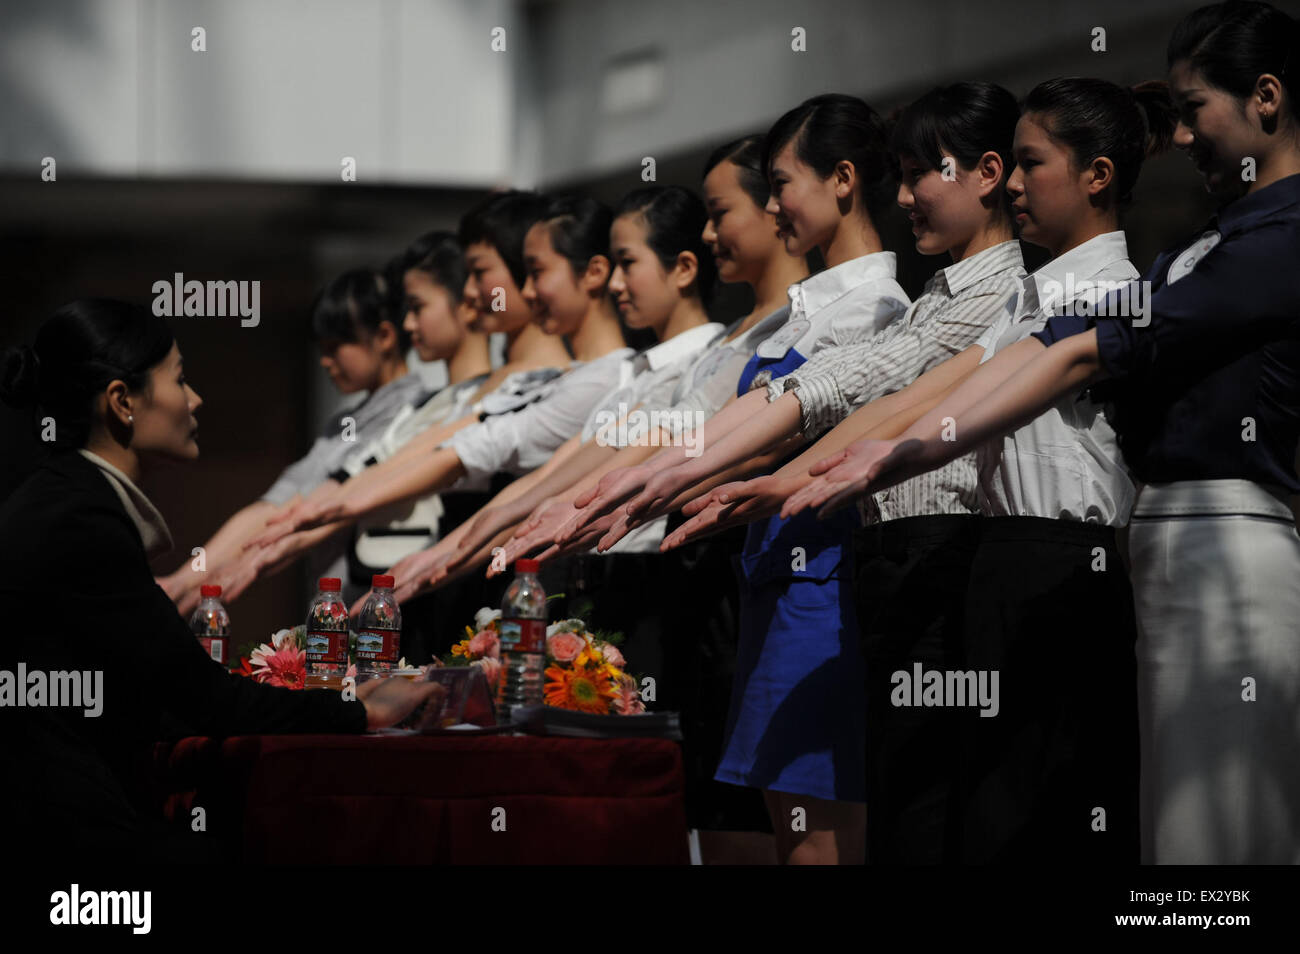 Candidates attend an etiquette test during a job fair recruiting the airline attendants for the 2010 Guangzhou Asian Stock Photo